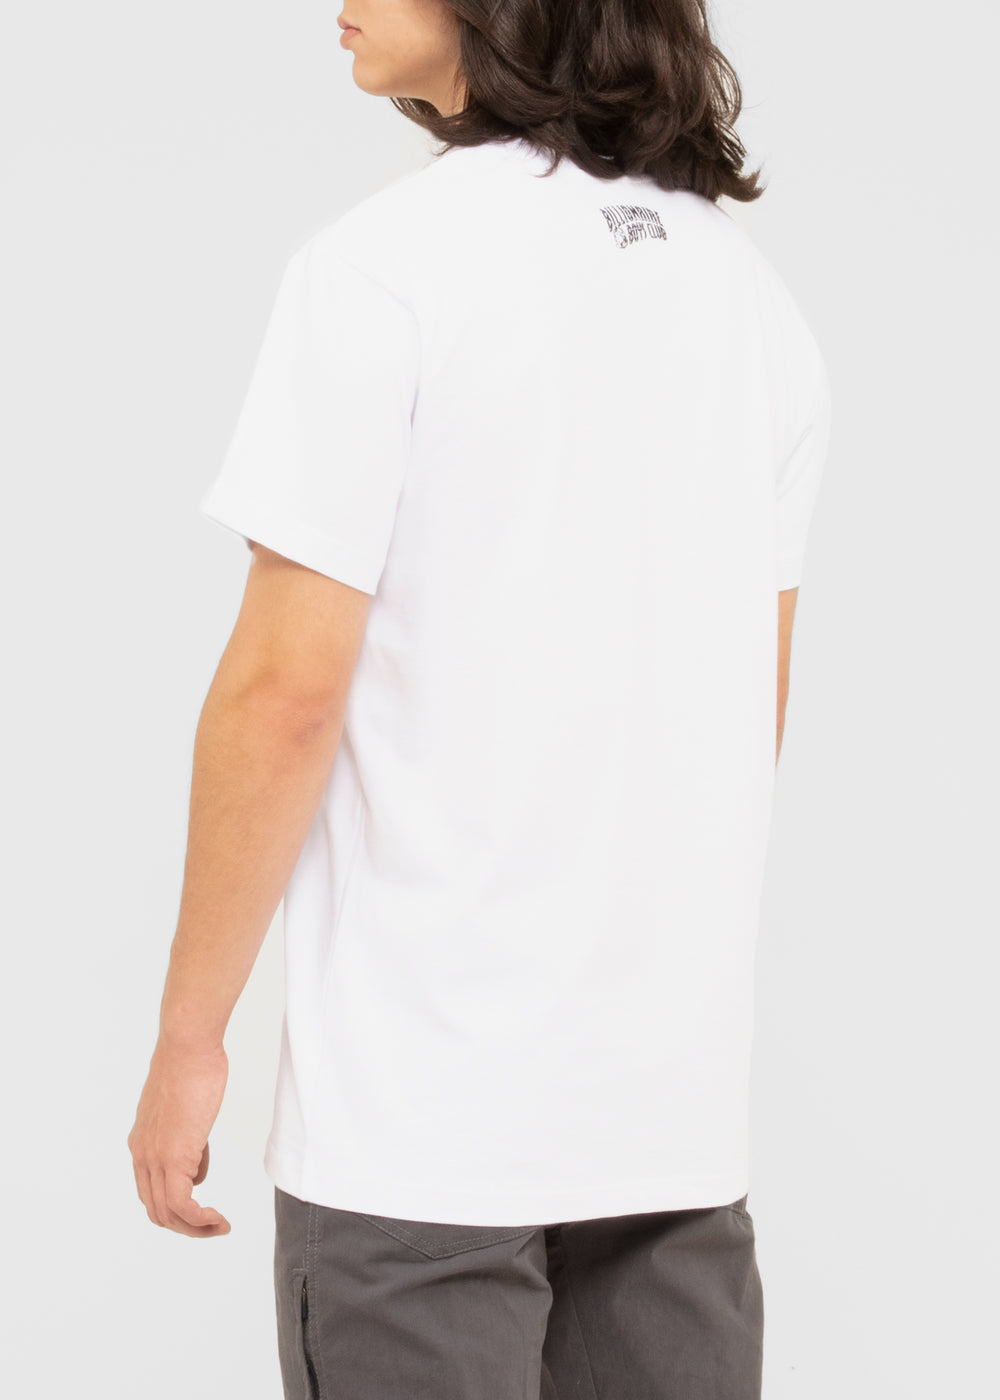 billionaire-boys-club-doubleed-ss-tee-891-7212-wht-wht-3